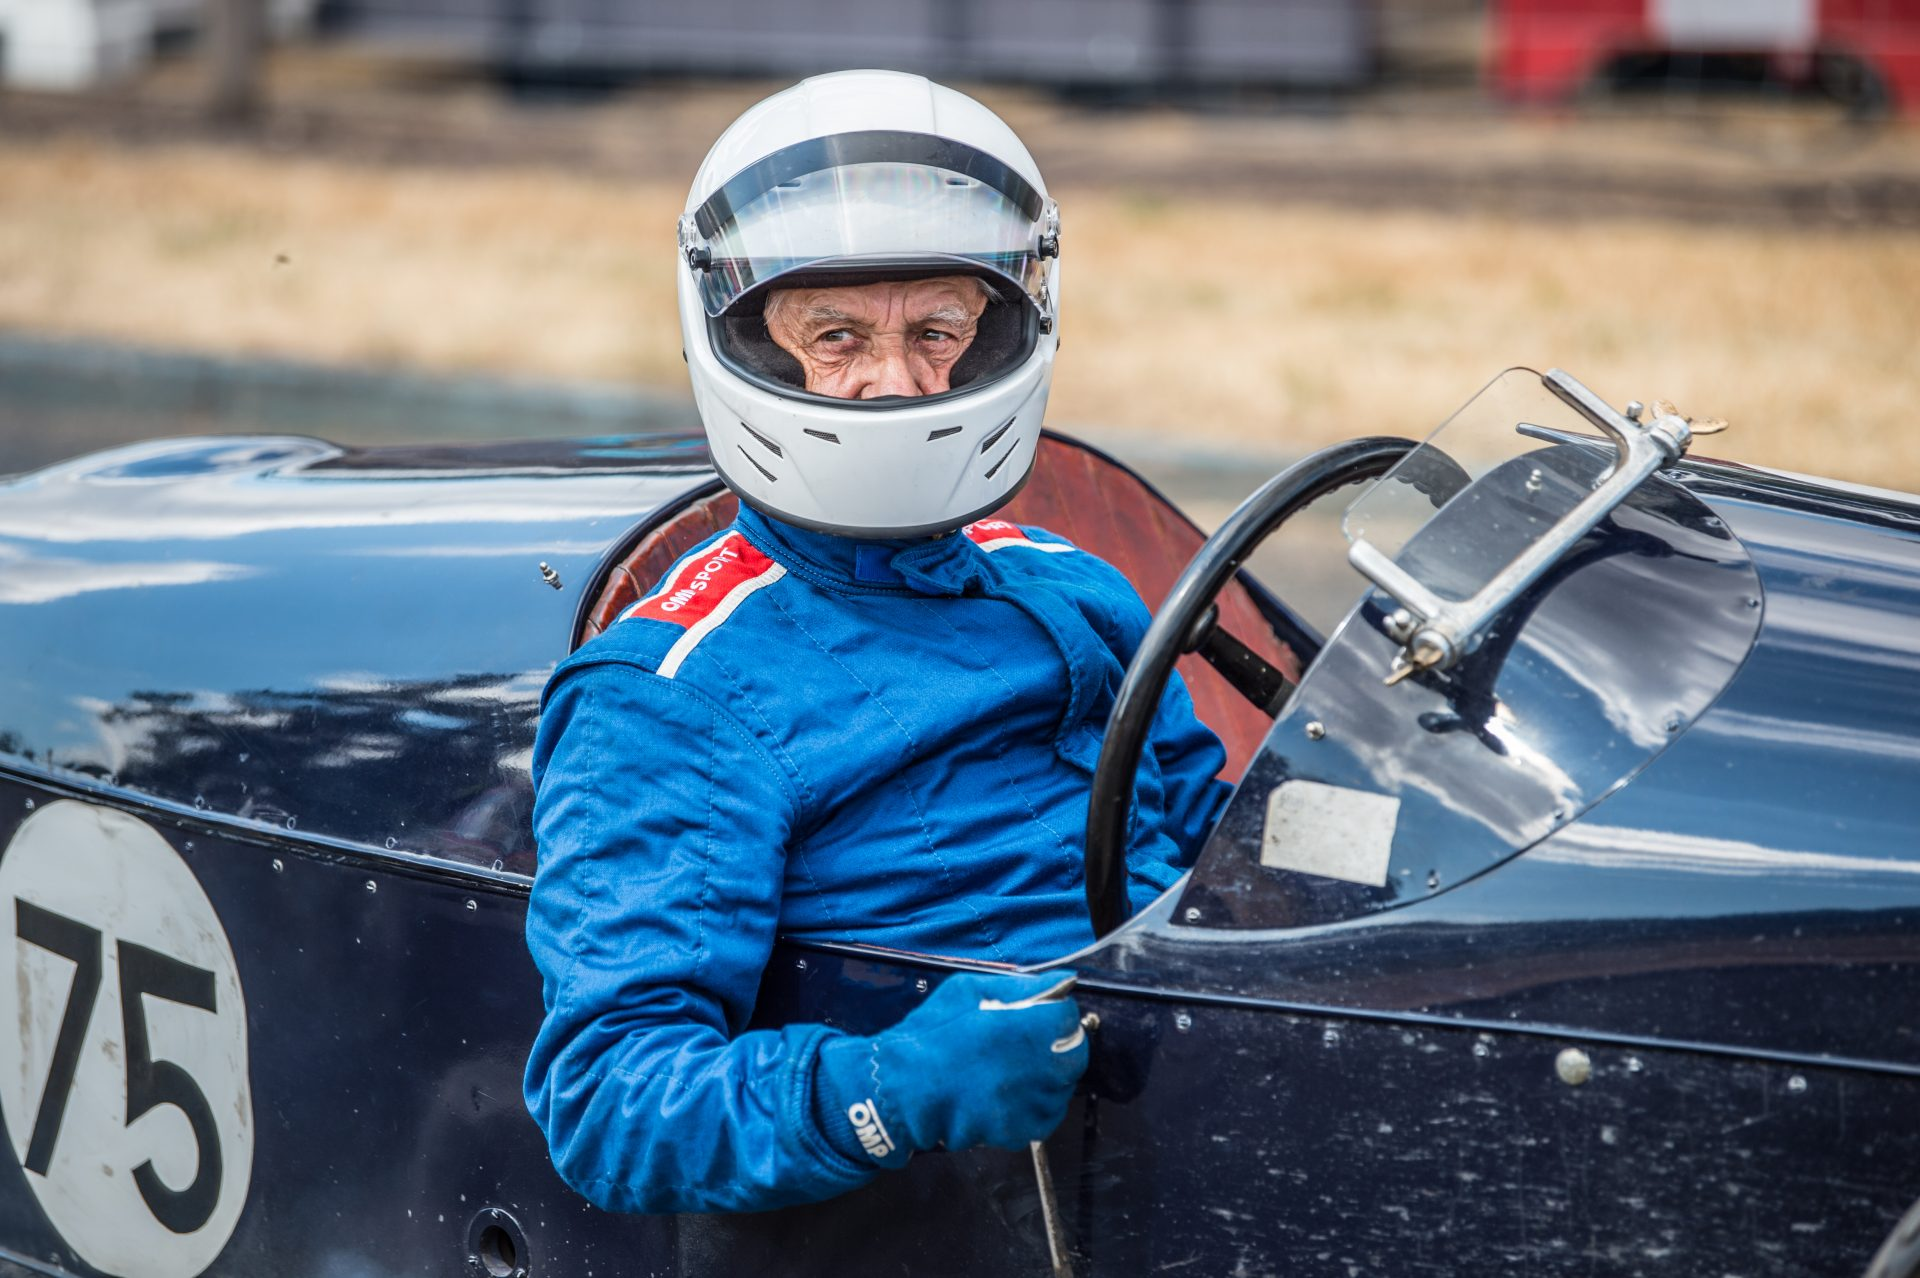 A photo of a competitor at the Chateau Impney Hill Climb 2018 where our Classic Car Finance team were in attendance.